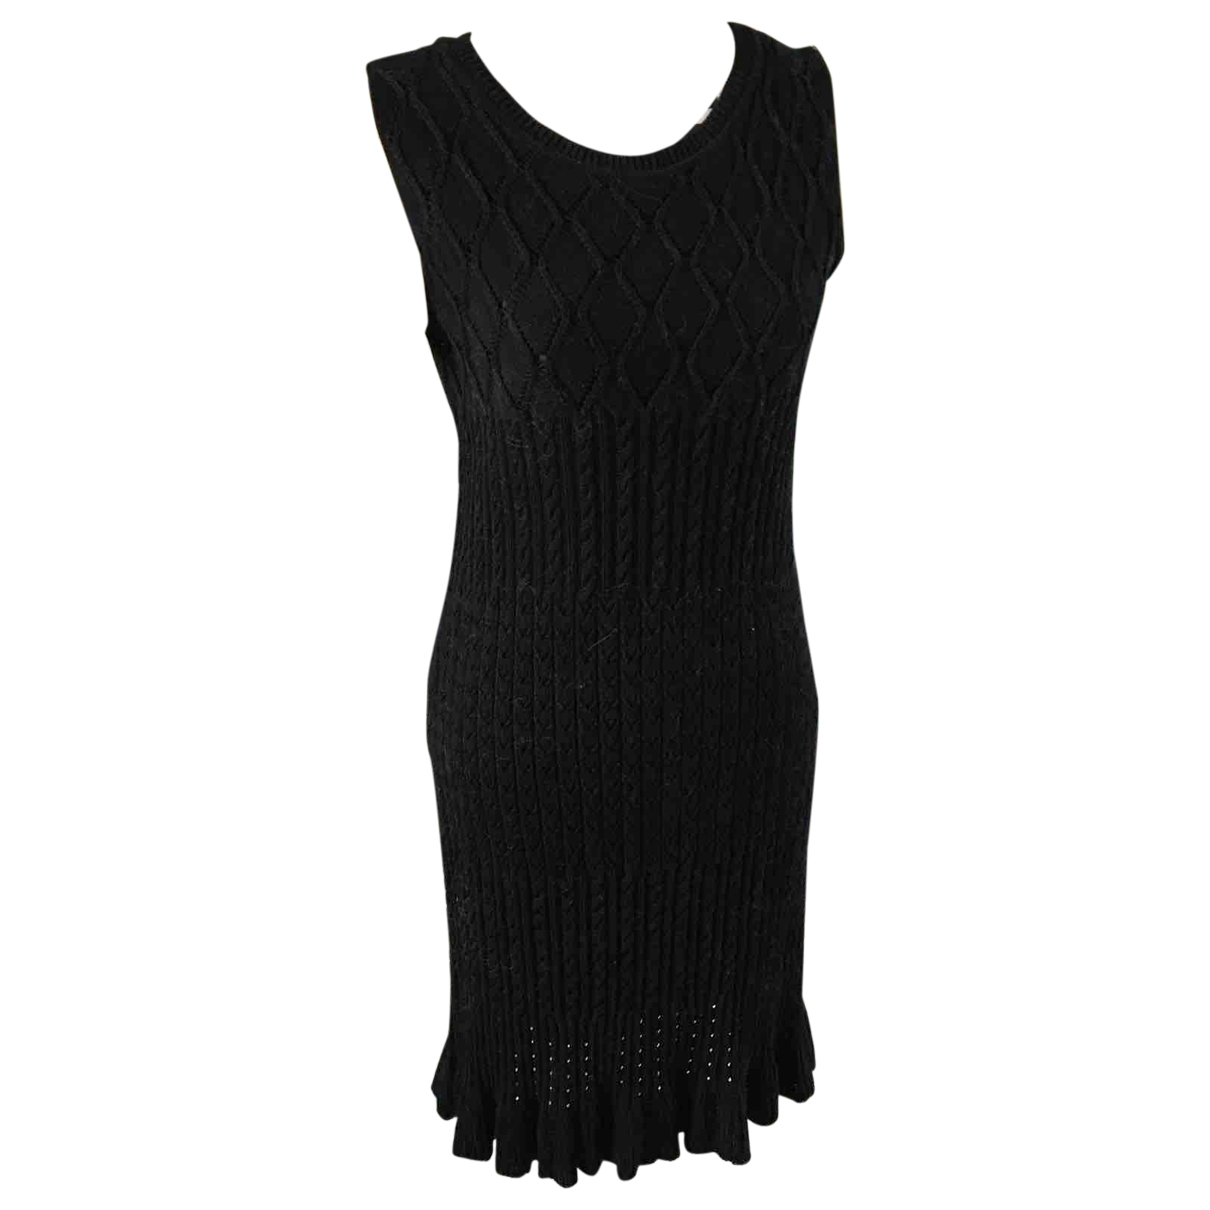 Moschino Cheap And Chic \N Black Wool dress for Women 38 FR